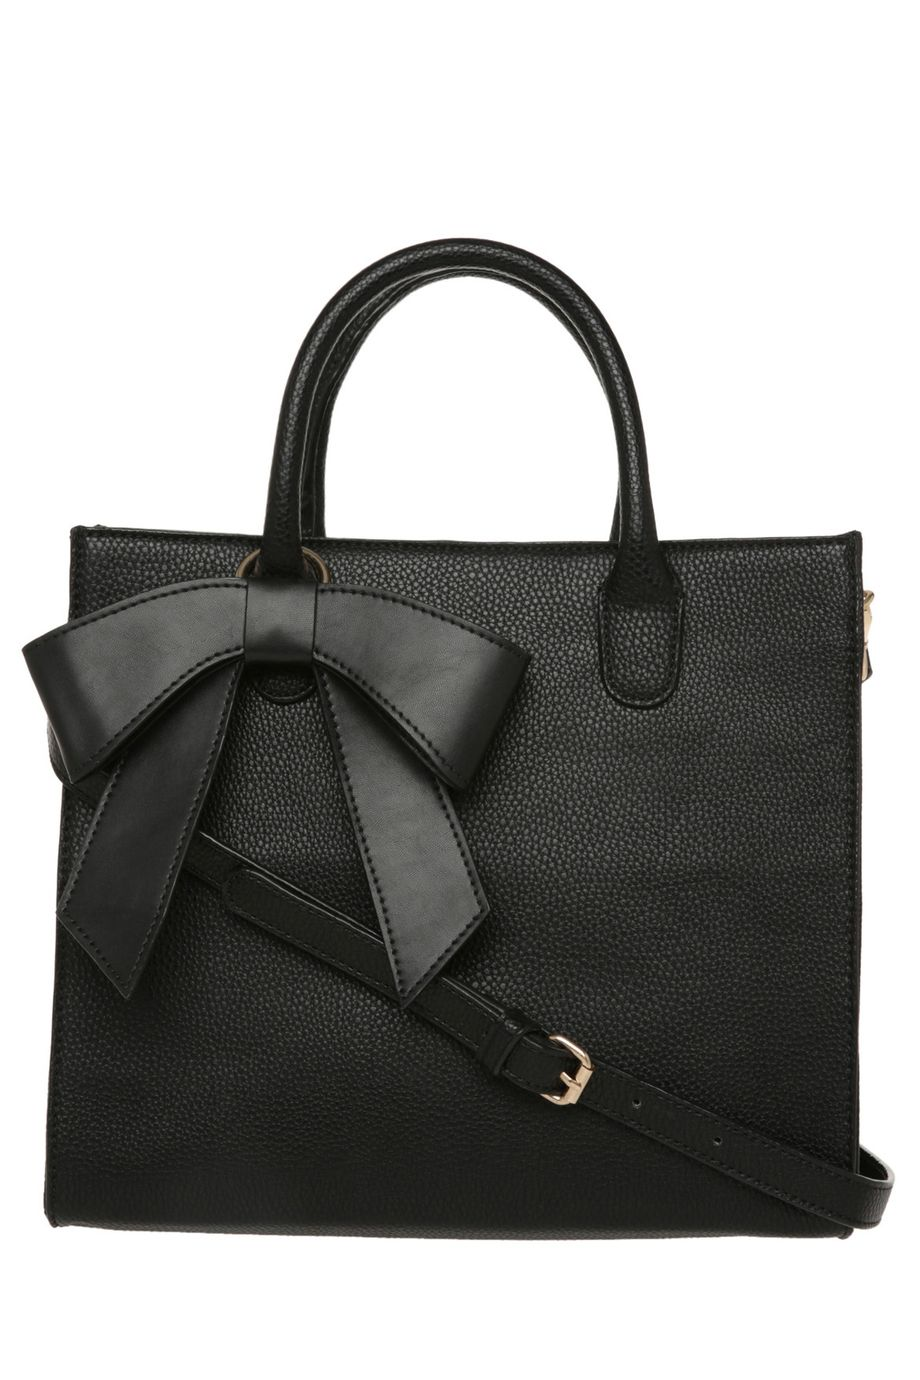 Leona By Edmiston Le0133 Cordelia Handle Tote Bag Myer Online